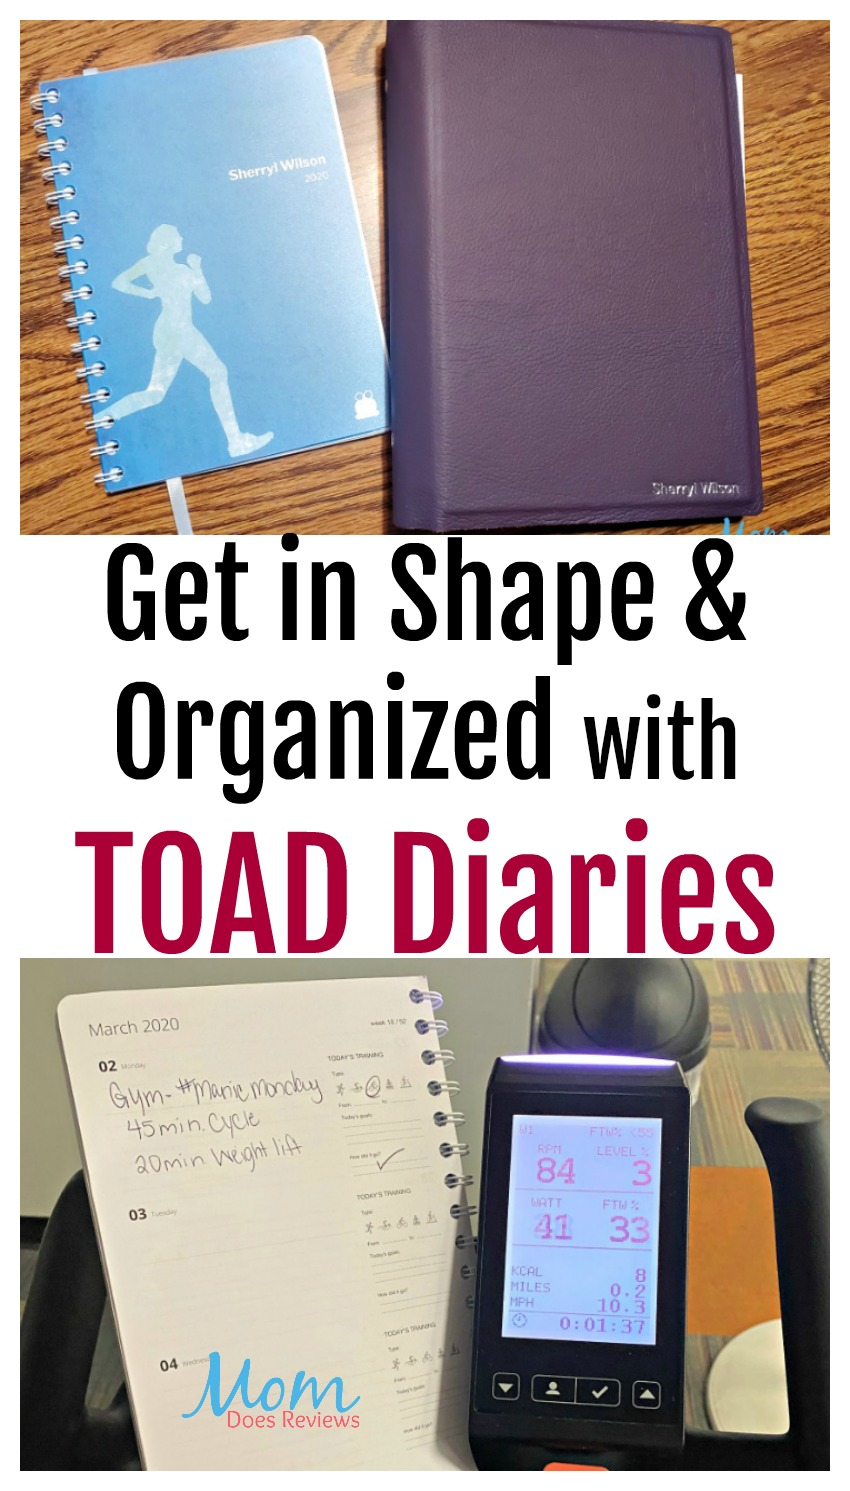 Get in Shape and Organized with TOAD Diaries